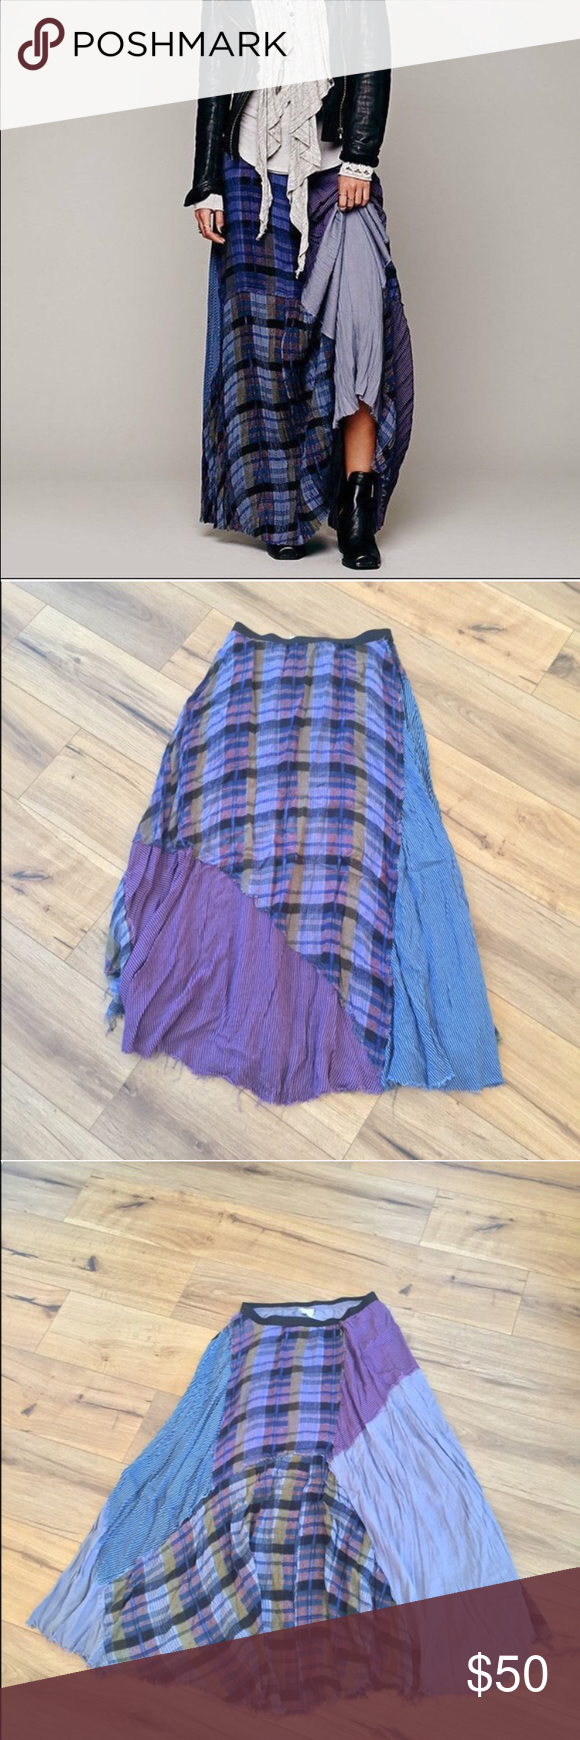 e76fc028e0 fp one 'royal' blue plaid patchwork maxi skirt pieced together plaid  patchwork maxi with